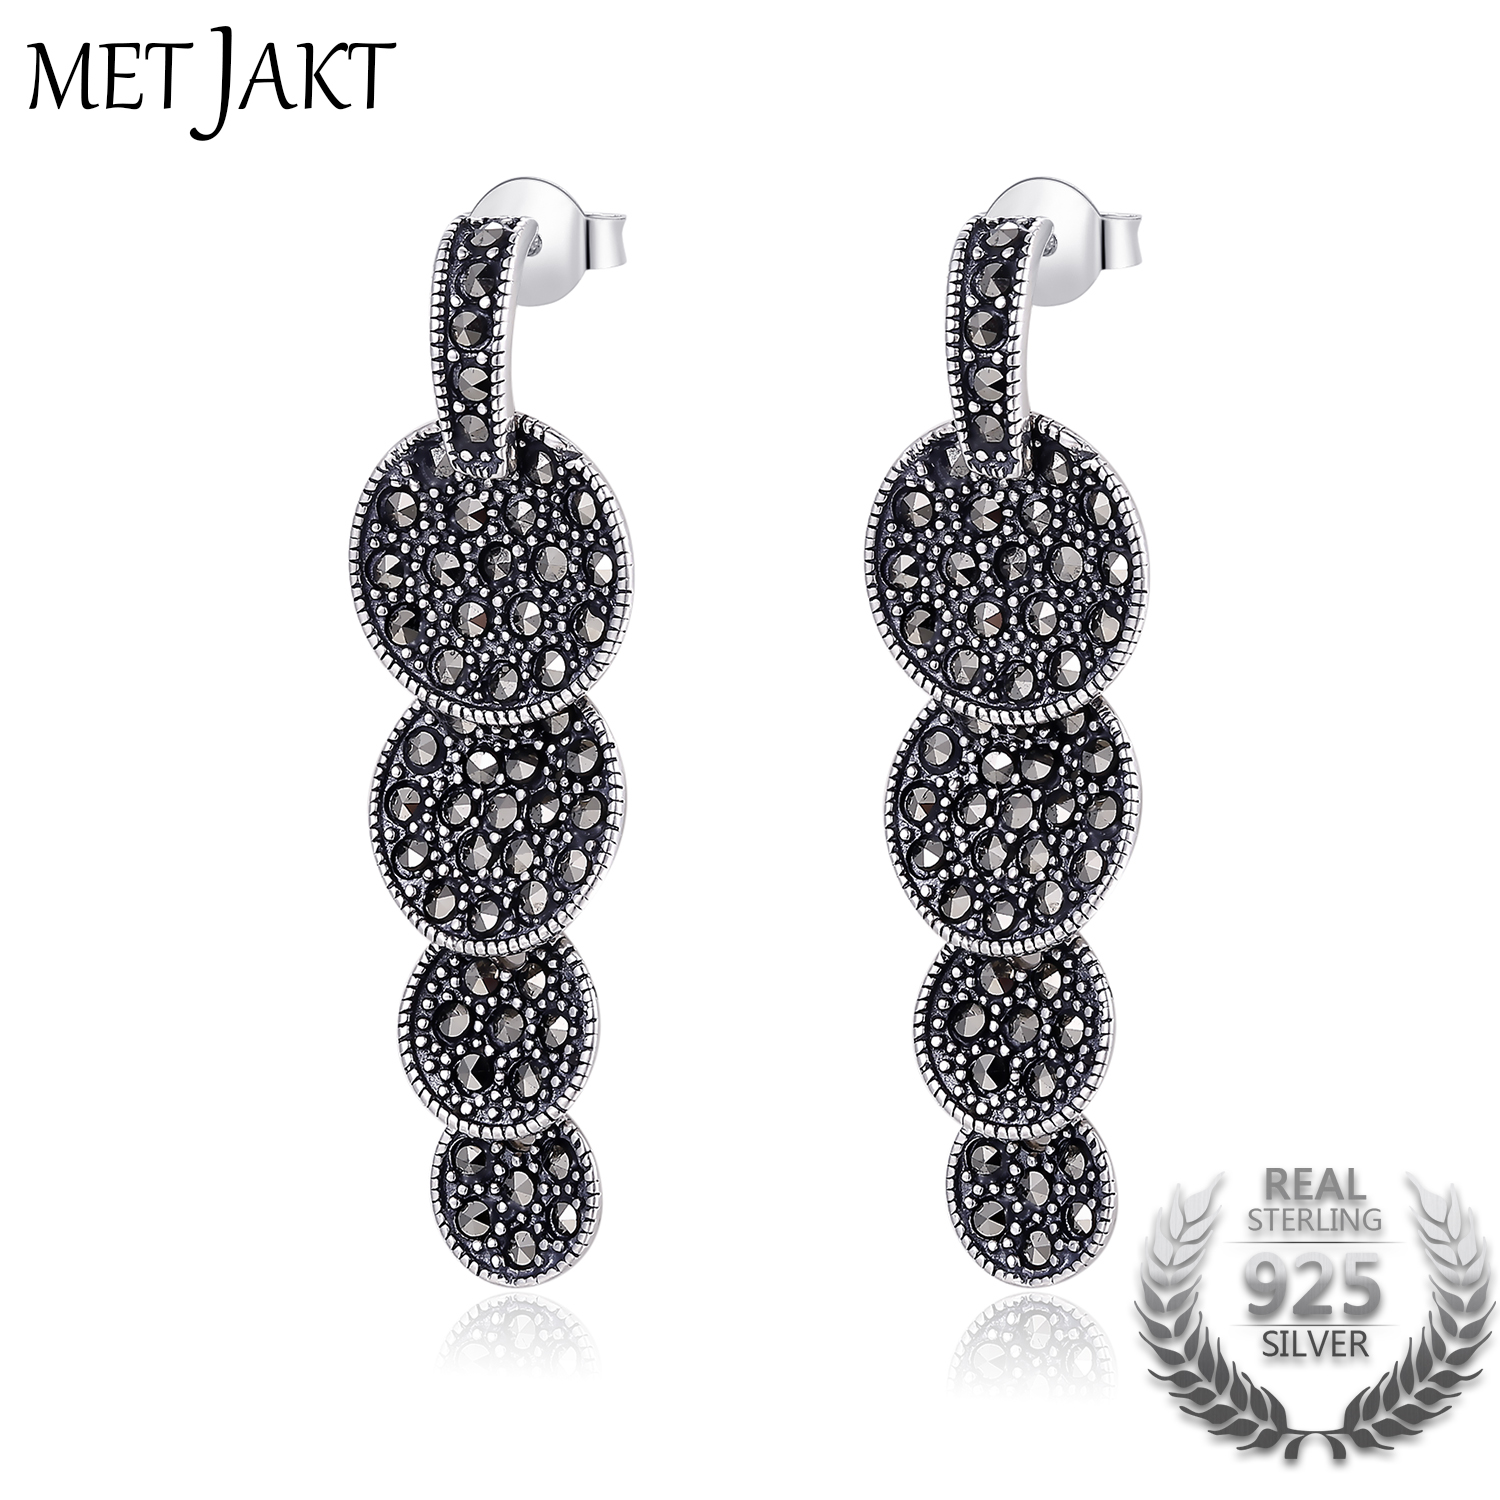 MetJakt 3A Cubic Zirconia&Austrian Crystal Solid 925 Sterling Silver Earrings for Womens Vintage Ethnic Fashion JewelryMetJakt 3A Cubic Zirconia&Austrian Crystal Solid 925 Sterling Silver Earrings for Womens Vintage Ethnic Fashion Jewelry